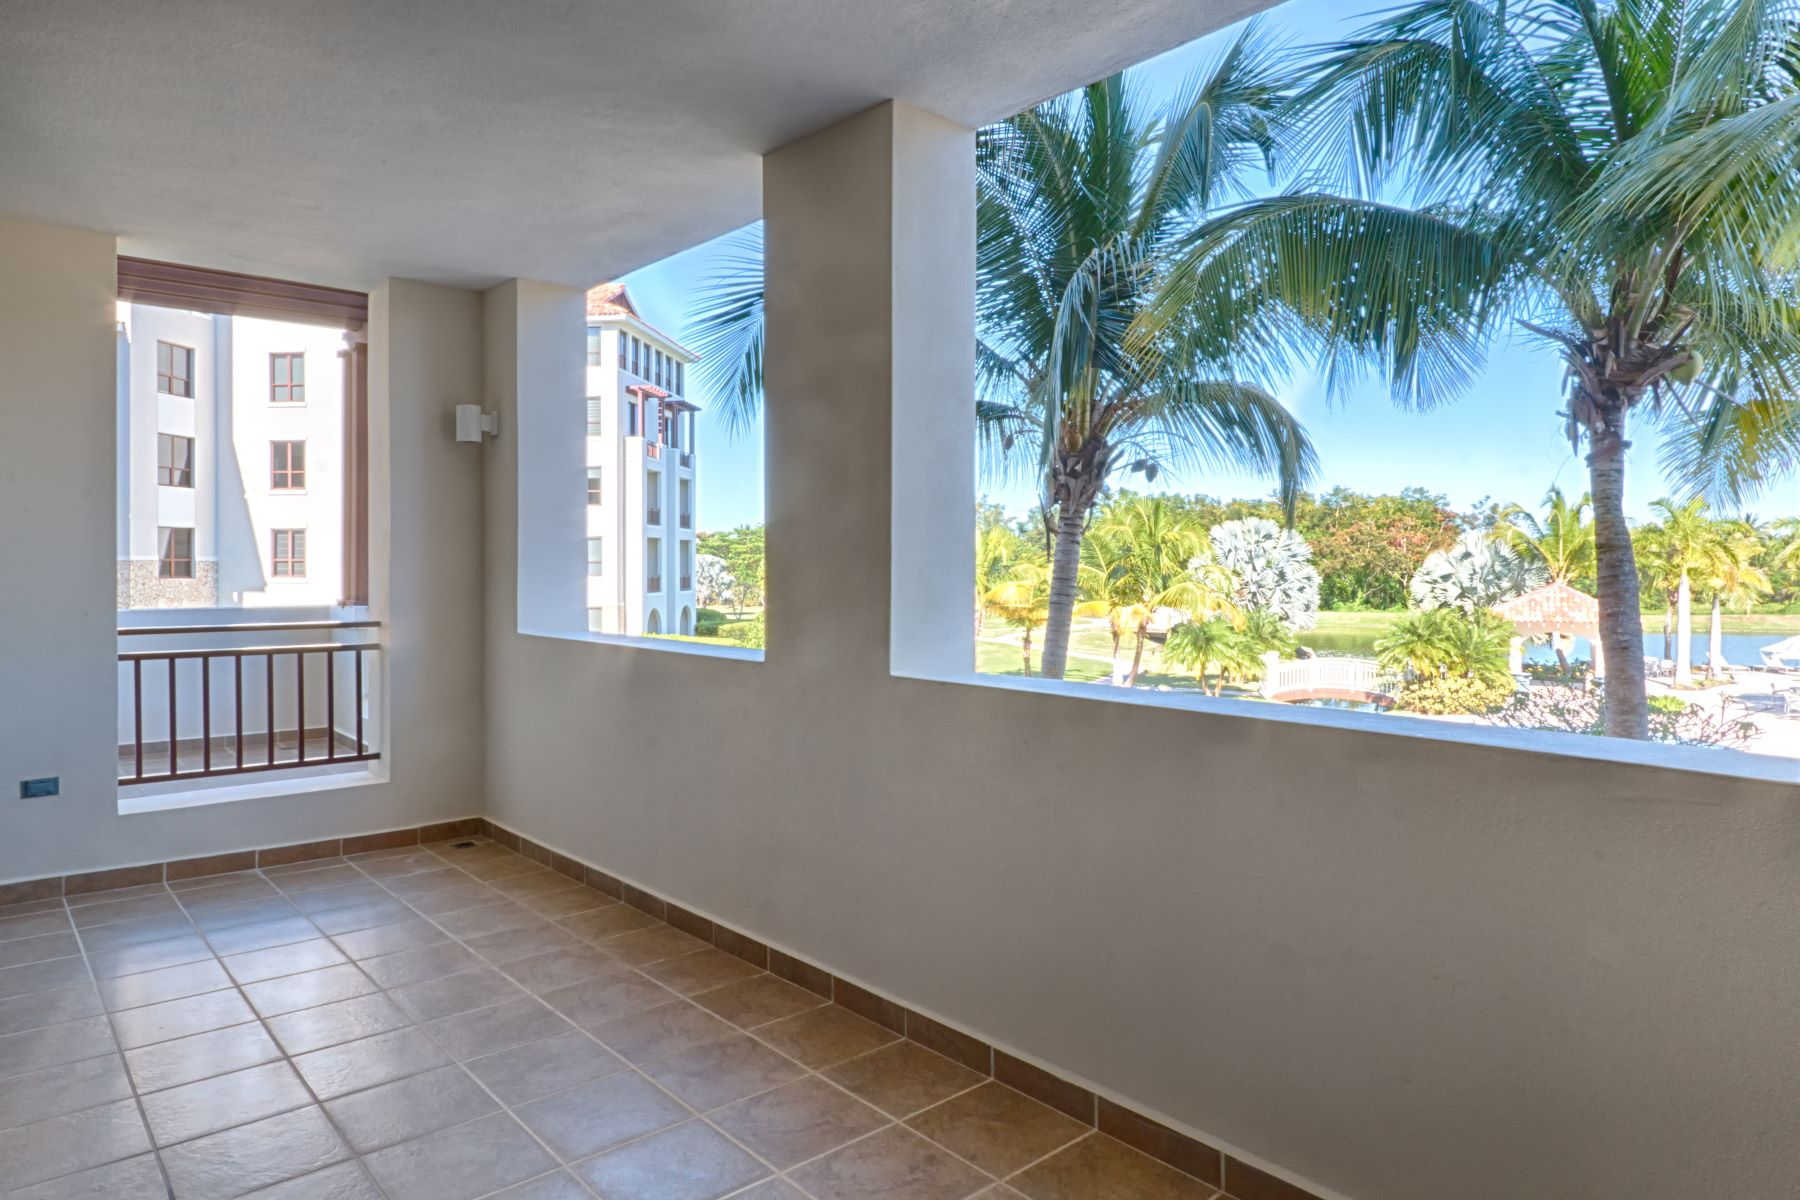 Additional photo for property listing at Residence 223 at 238 Candelero Drive 238 Candelero Drive, Apt 223 Solarea Beach Resort and Yacht Club Palmas Del Mar, 波多黎各 00791 波多黎各